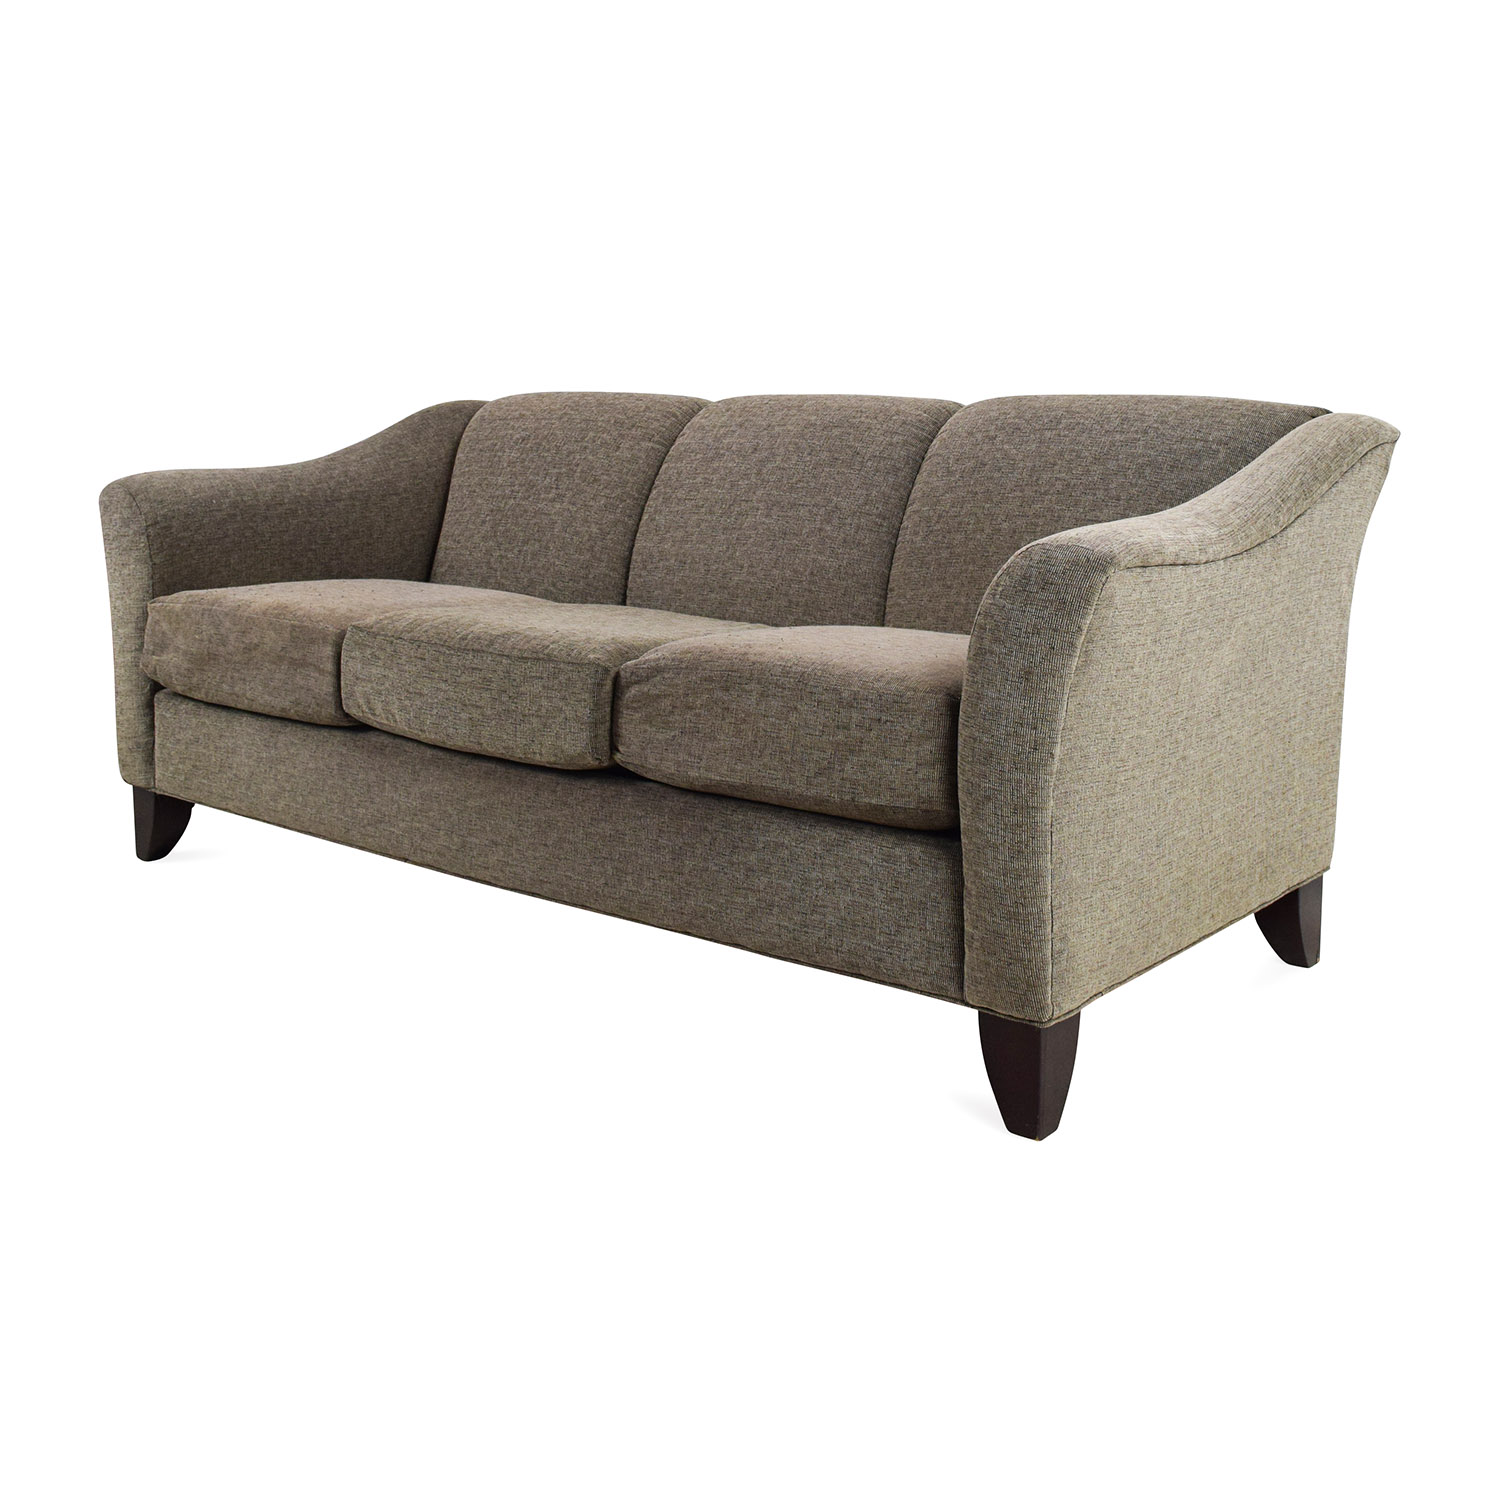 72 off raymour and flanigan raymour flanigan meyer Chenille sofa and loveseat